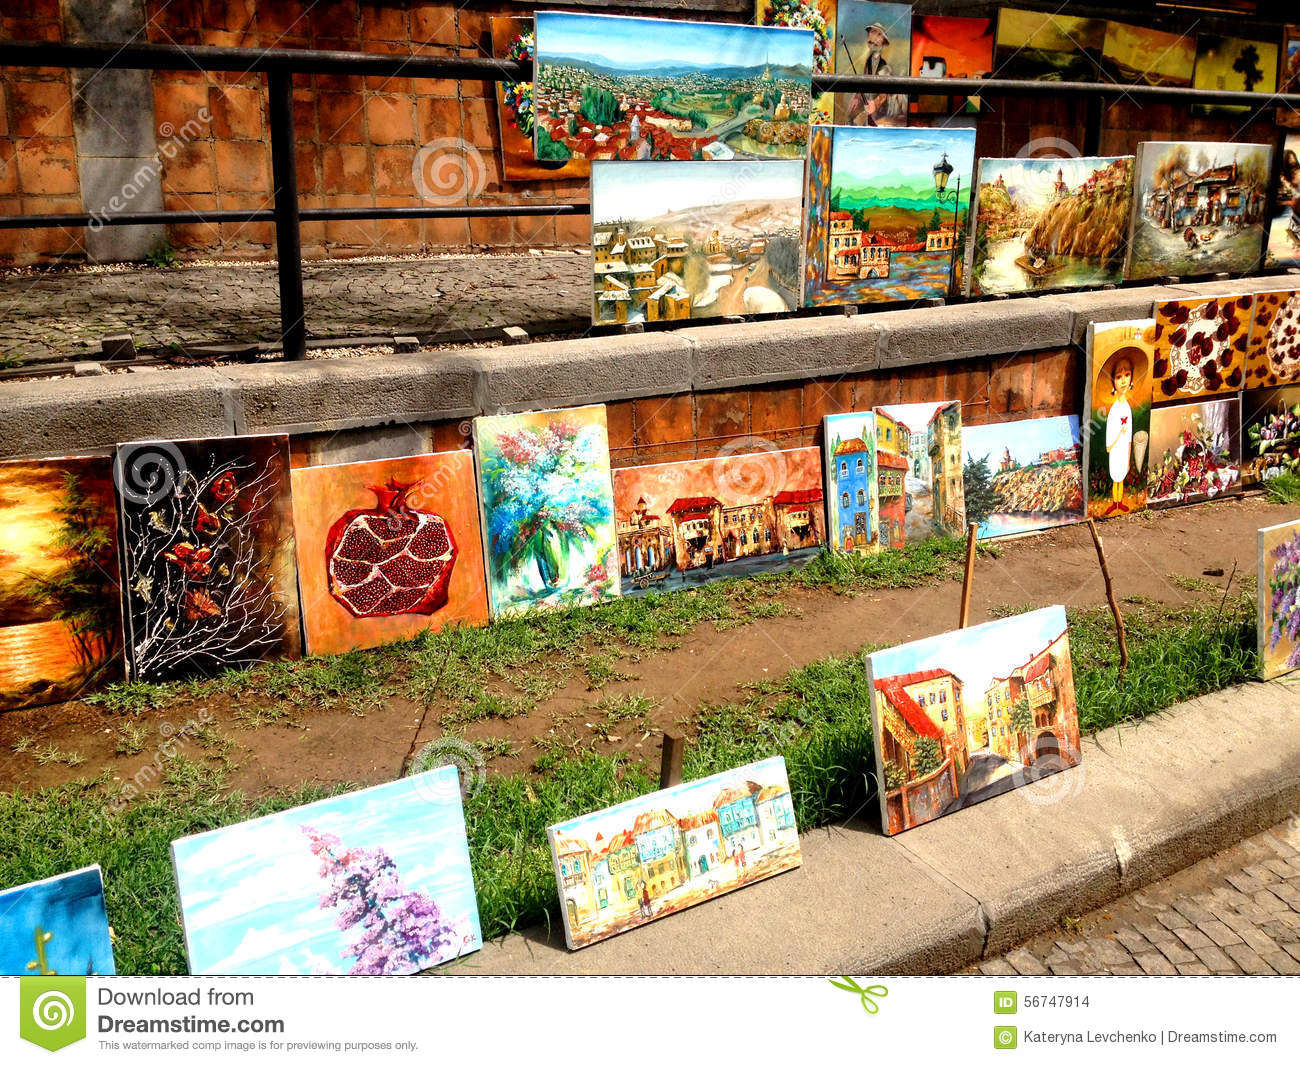 Georgia Tbilisi Flea Market Stock Photos Georgia Tbilisi: Flea Market Tbilisi, Georgia Editorial Stock Image